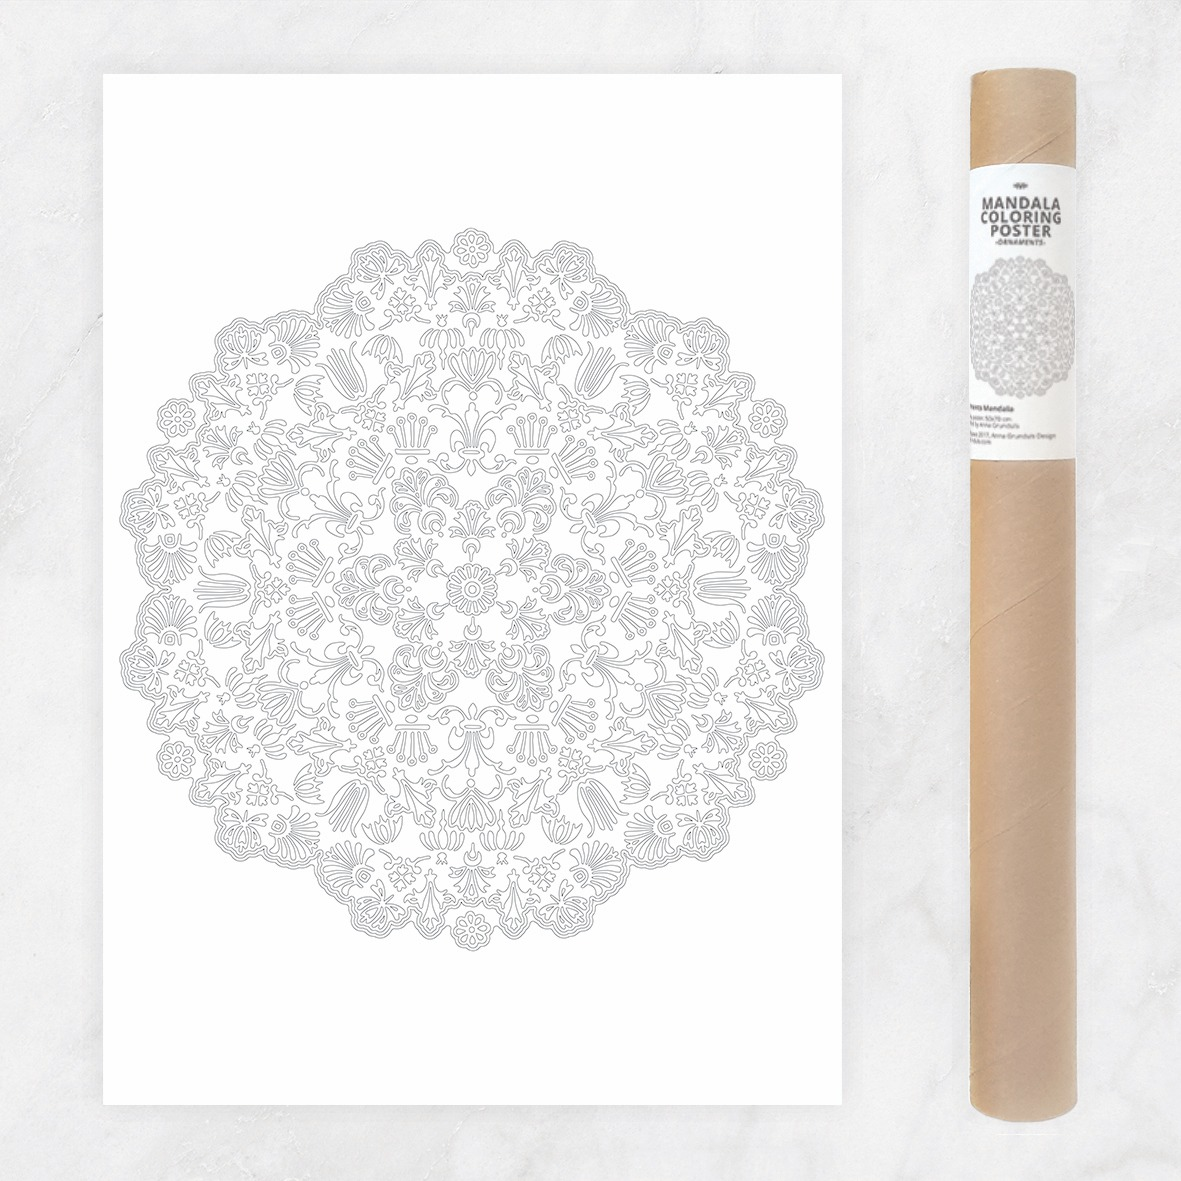 floral ornaments mandala coloring poster to color in diy mandala wall art decoration giant adult coloring page